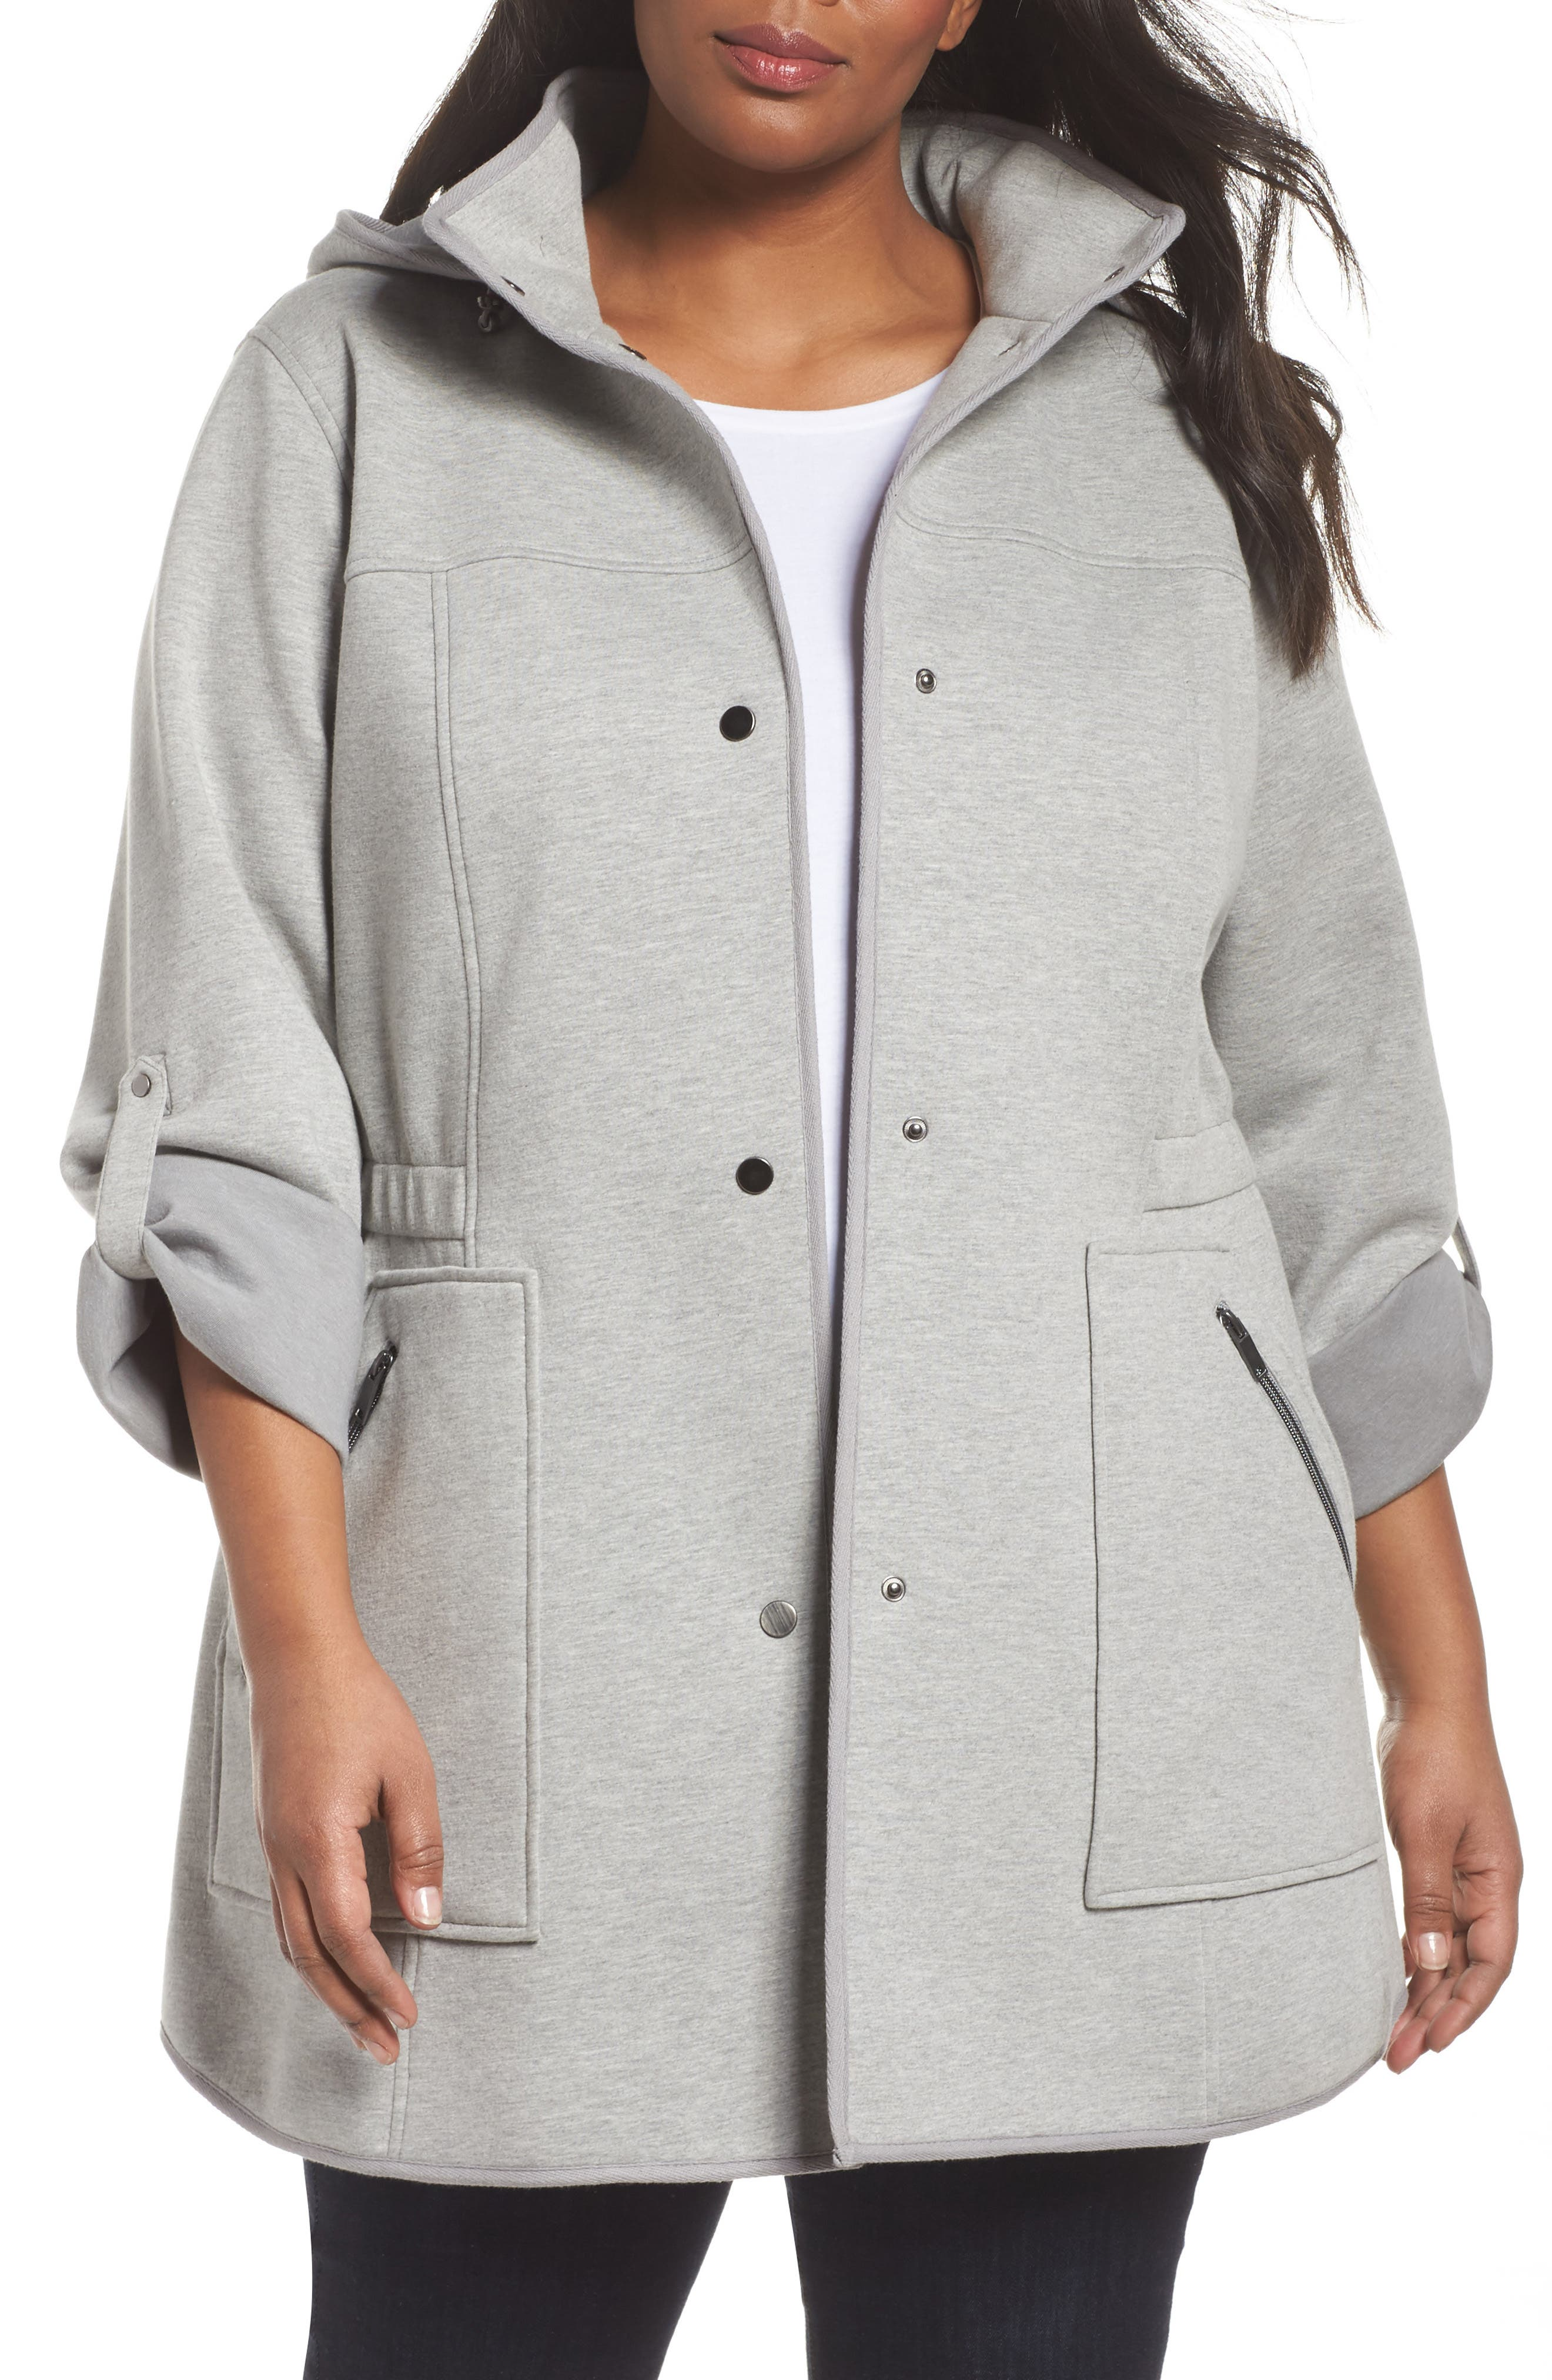 Alternate Image 1 Selected - Gallery Hooded Knit Anorak (Plus Size)